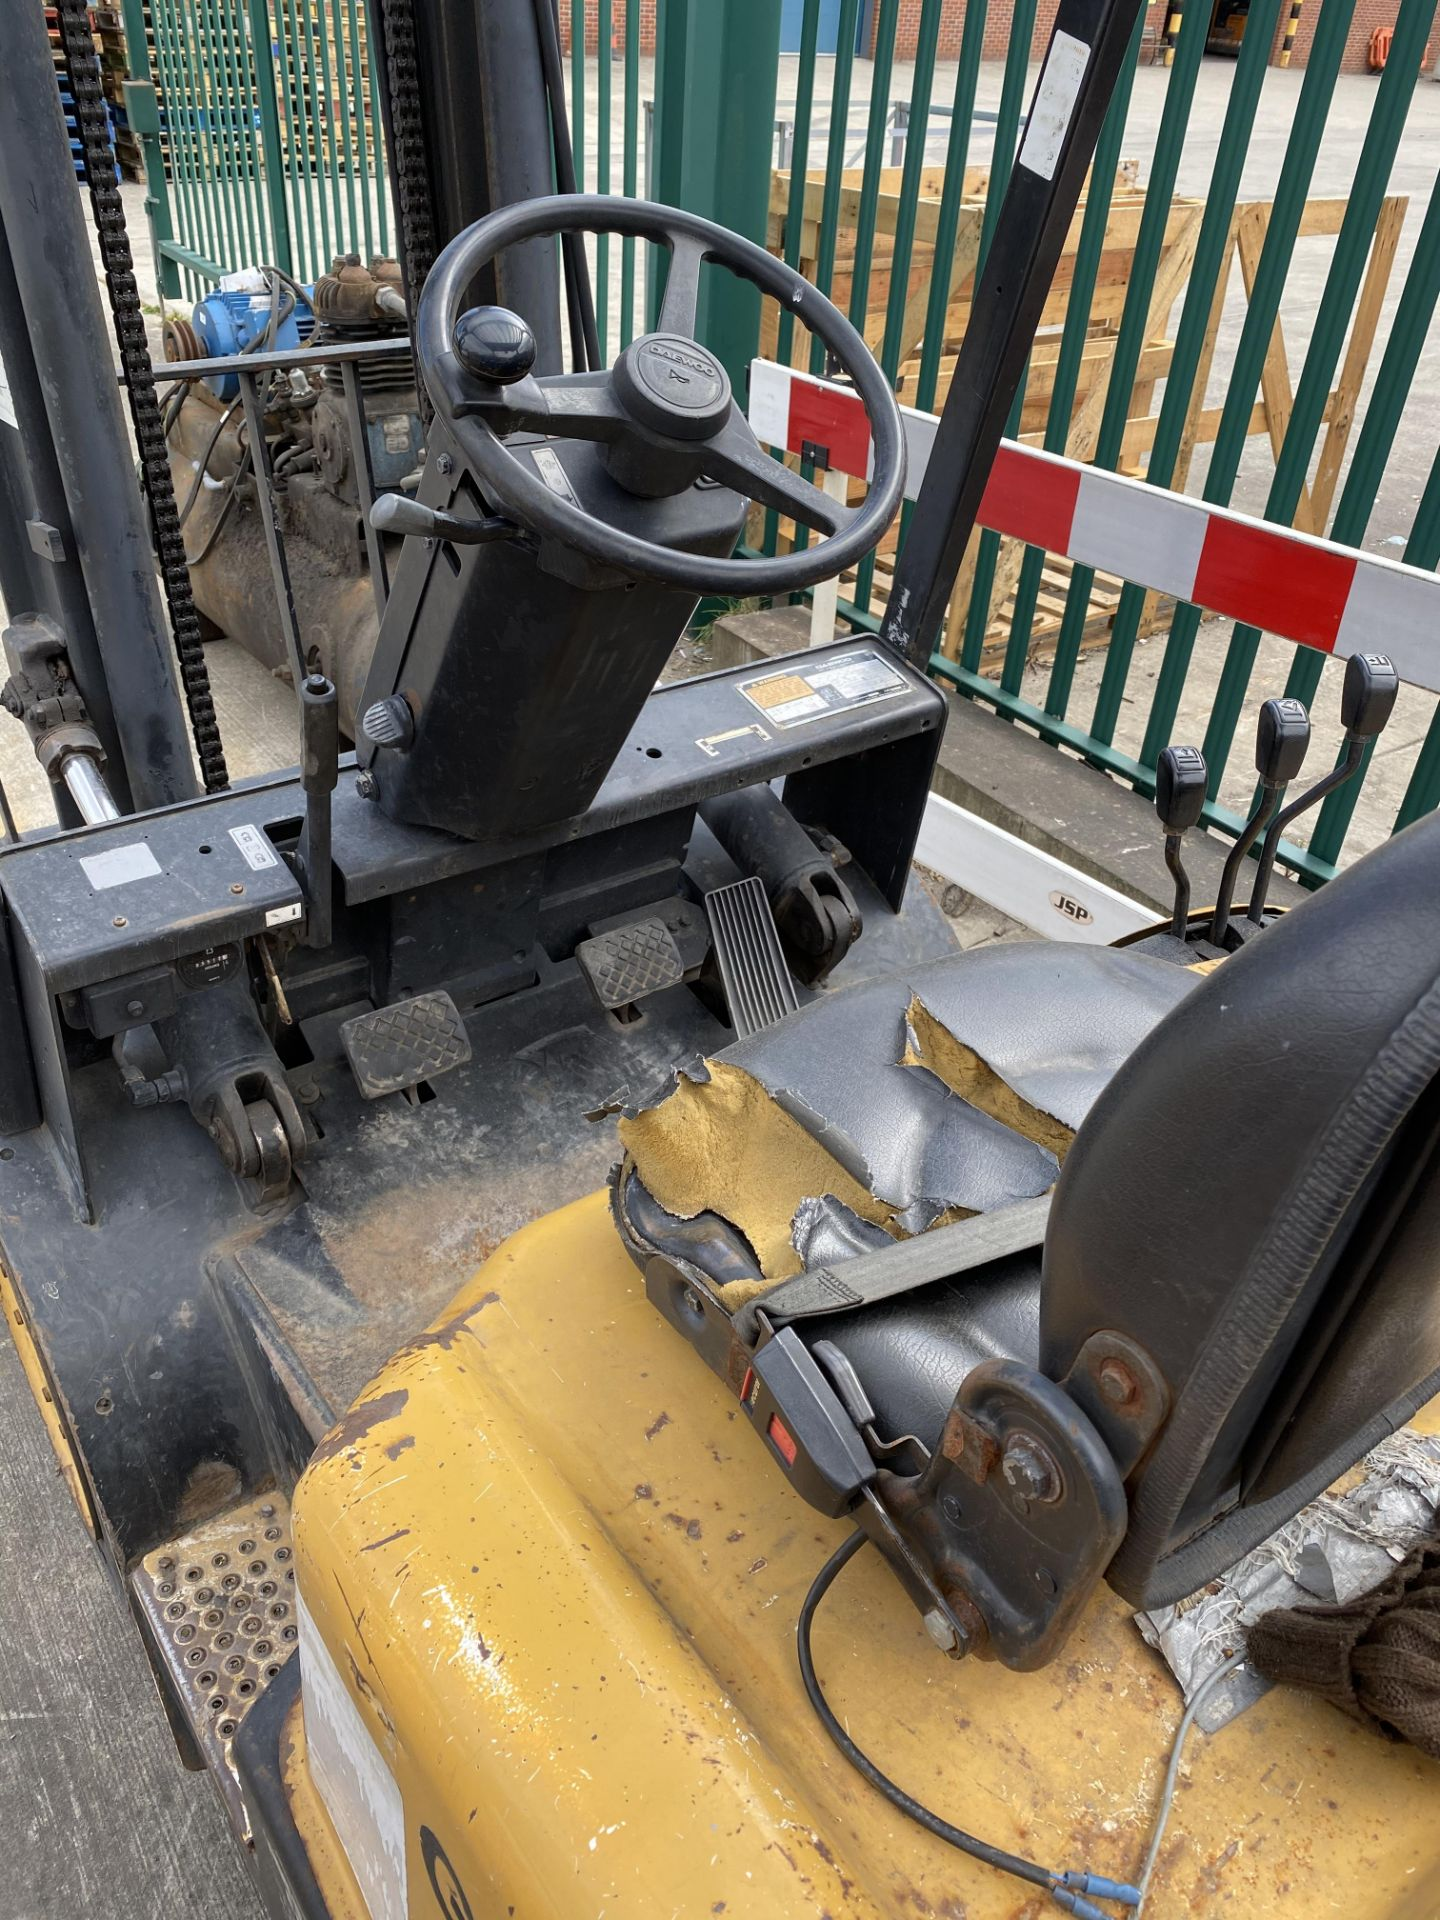 Lot 9 - DAEWOO G25E-3 gas fork lift truck Yellow/black Capacity 2500kg Serial number CX-03577 One key